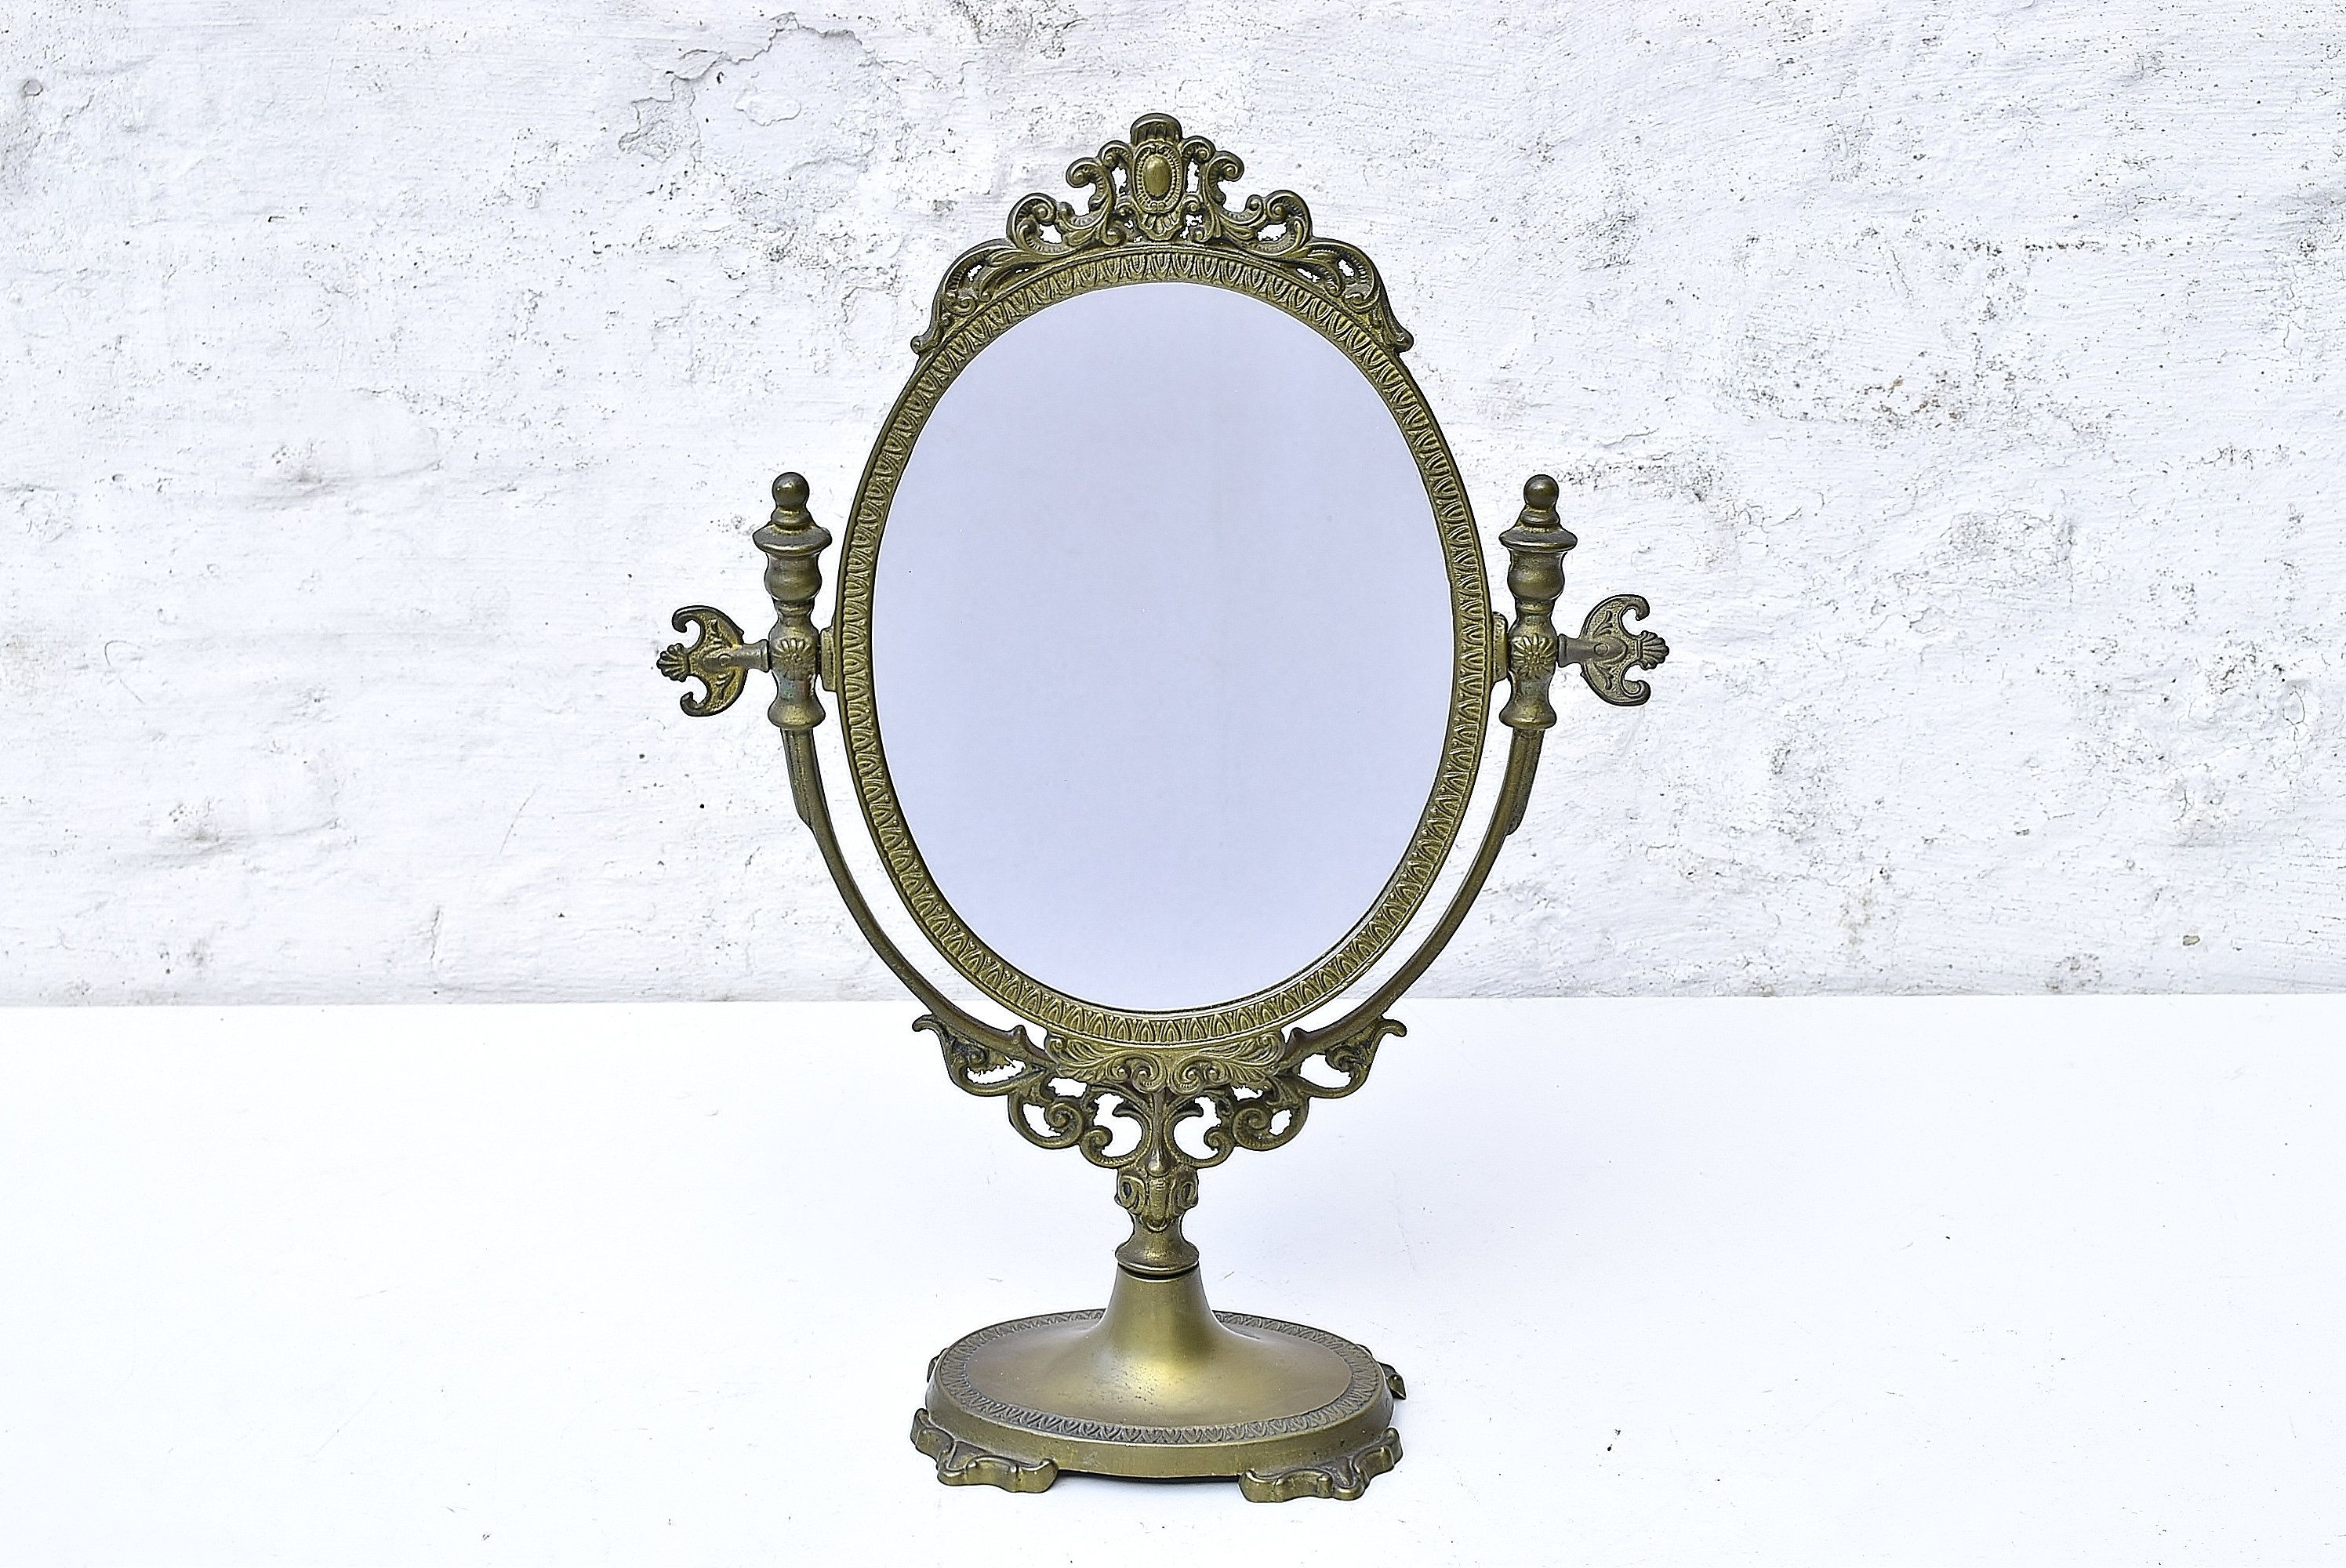 Brass Makeup Mirror Vintage French Baroque Vanity Table Top Cosmetic Mirror Girl S Best Friend Antique Ornamental Design France 1930s Cosmetic Mirror French Baroque Makeup Mirror